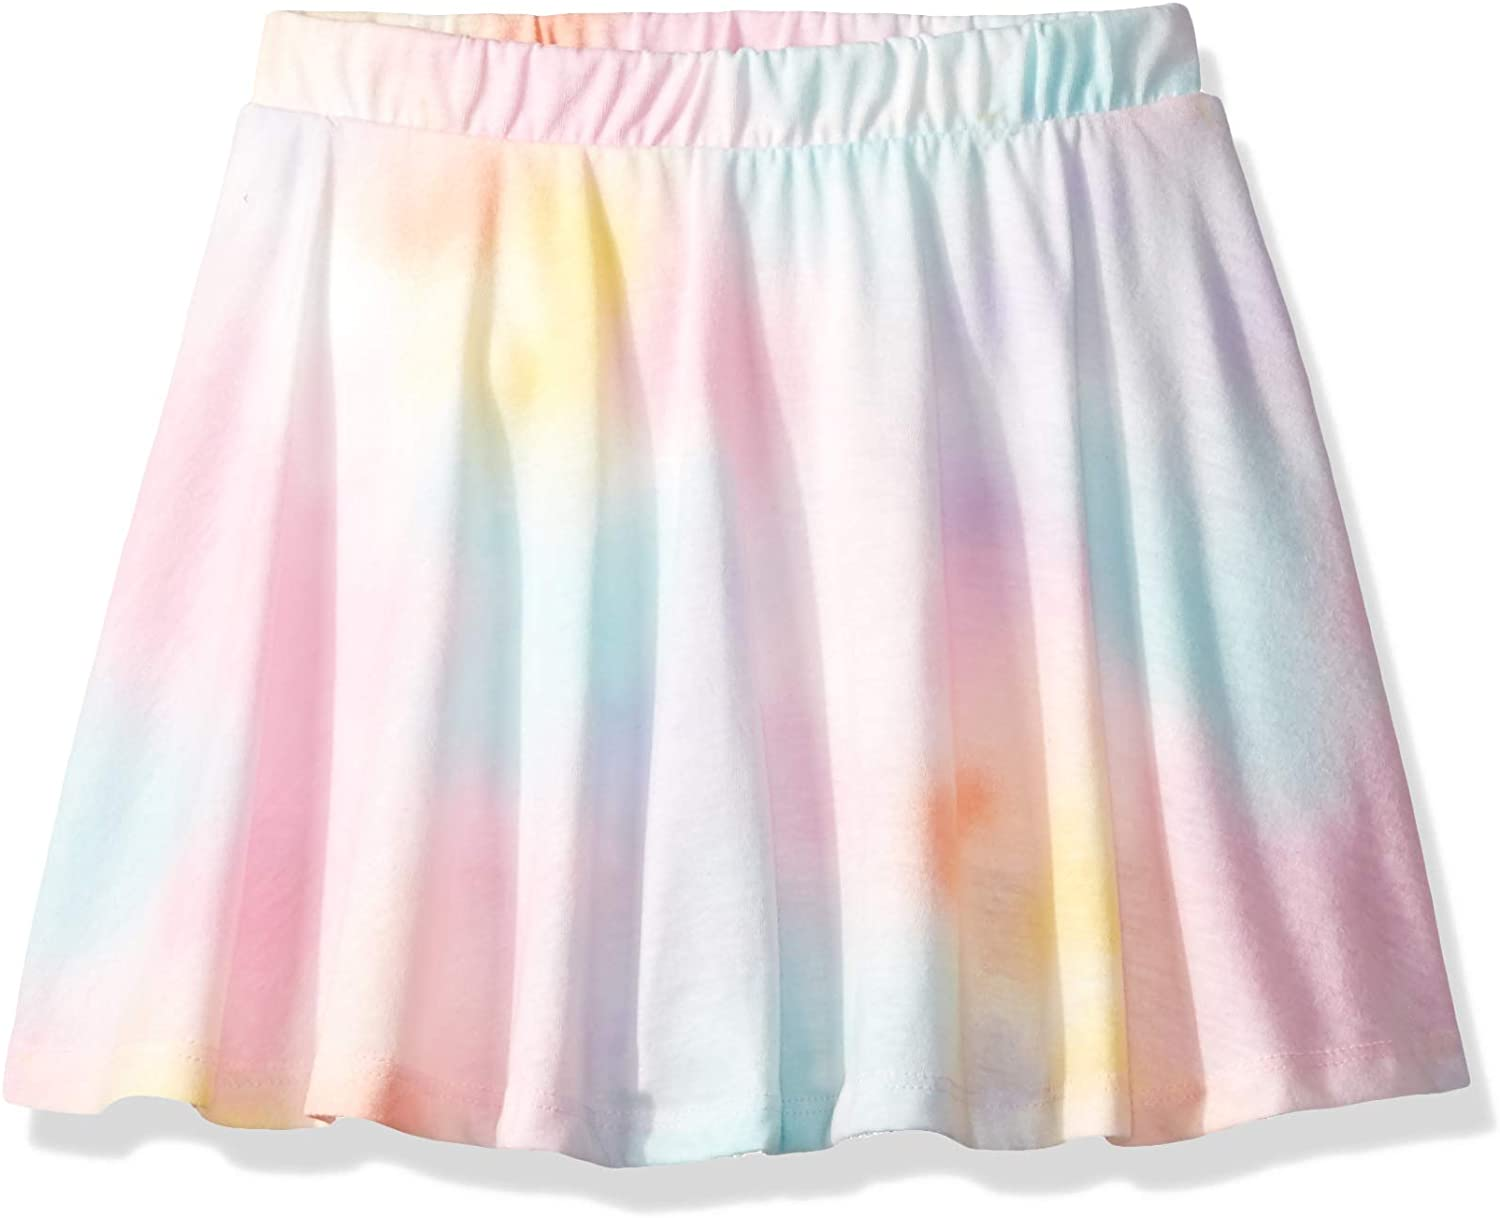 The Childrens Place Baby Girls Novelty Printed Matchable Skirts